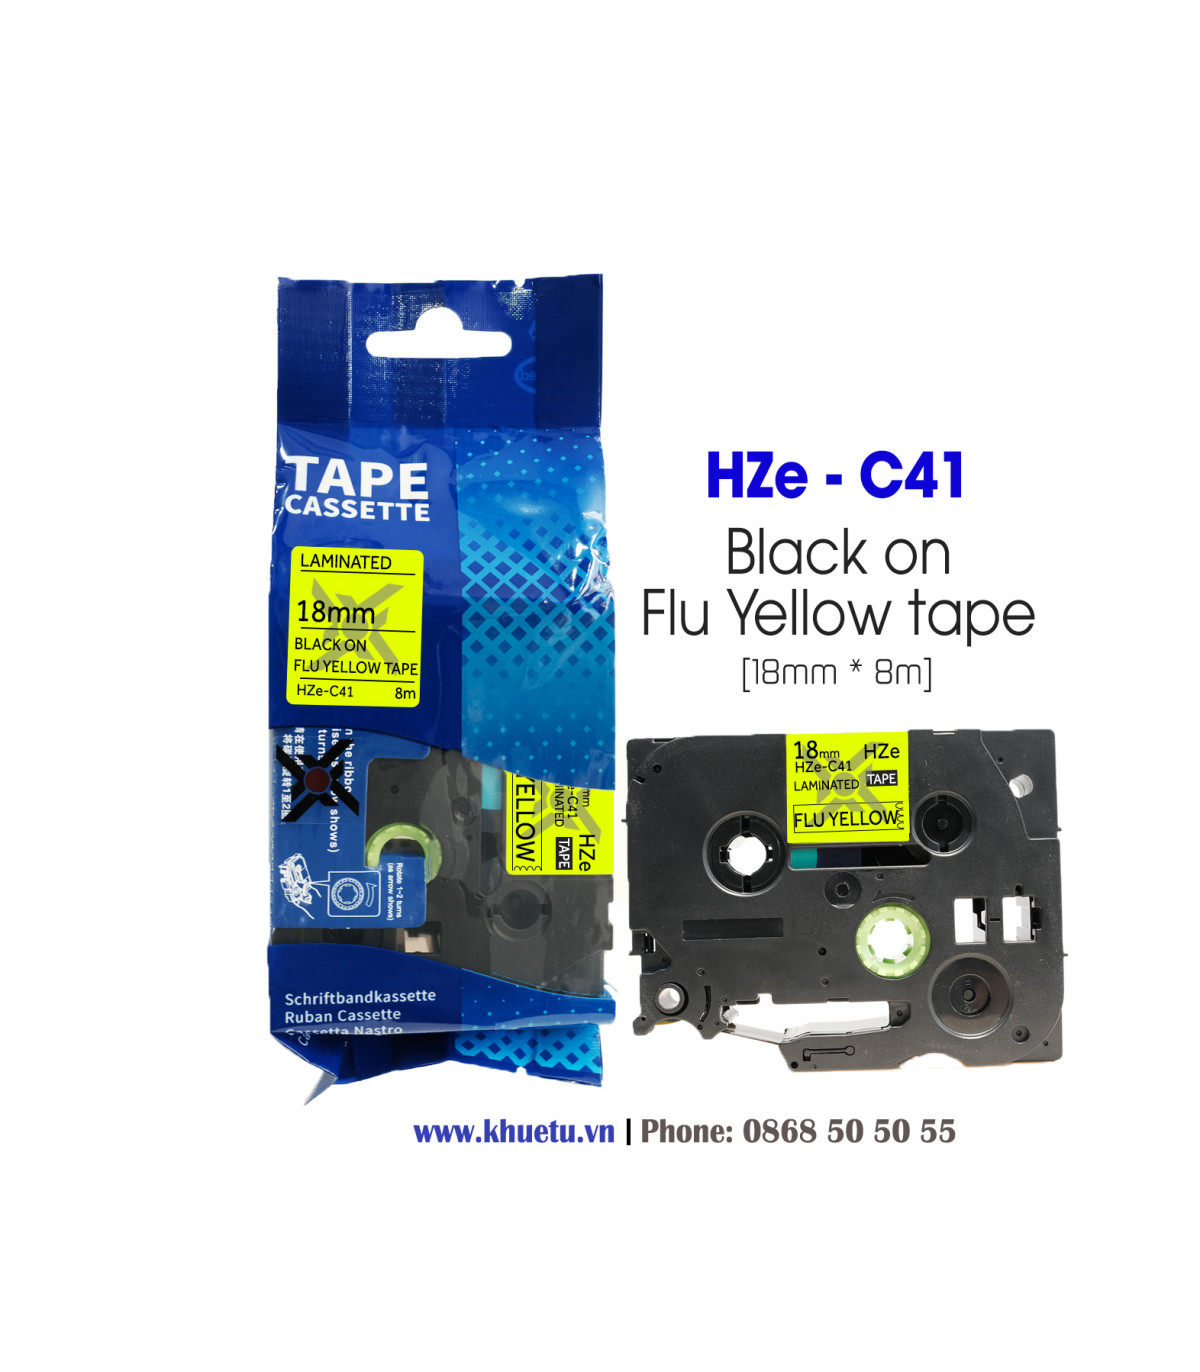 Nhãn in HZe-C41 (TZe-C41, TZ2-C41), 18mm x 8m, Black on Flourescent Yellow, Dạ quang | ⓿❽❻❽❺⓿❺⓿❺❺ | Nhãn in, tem in, giấy in,...